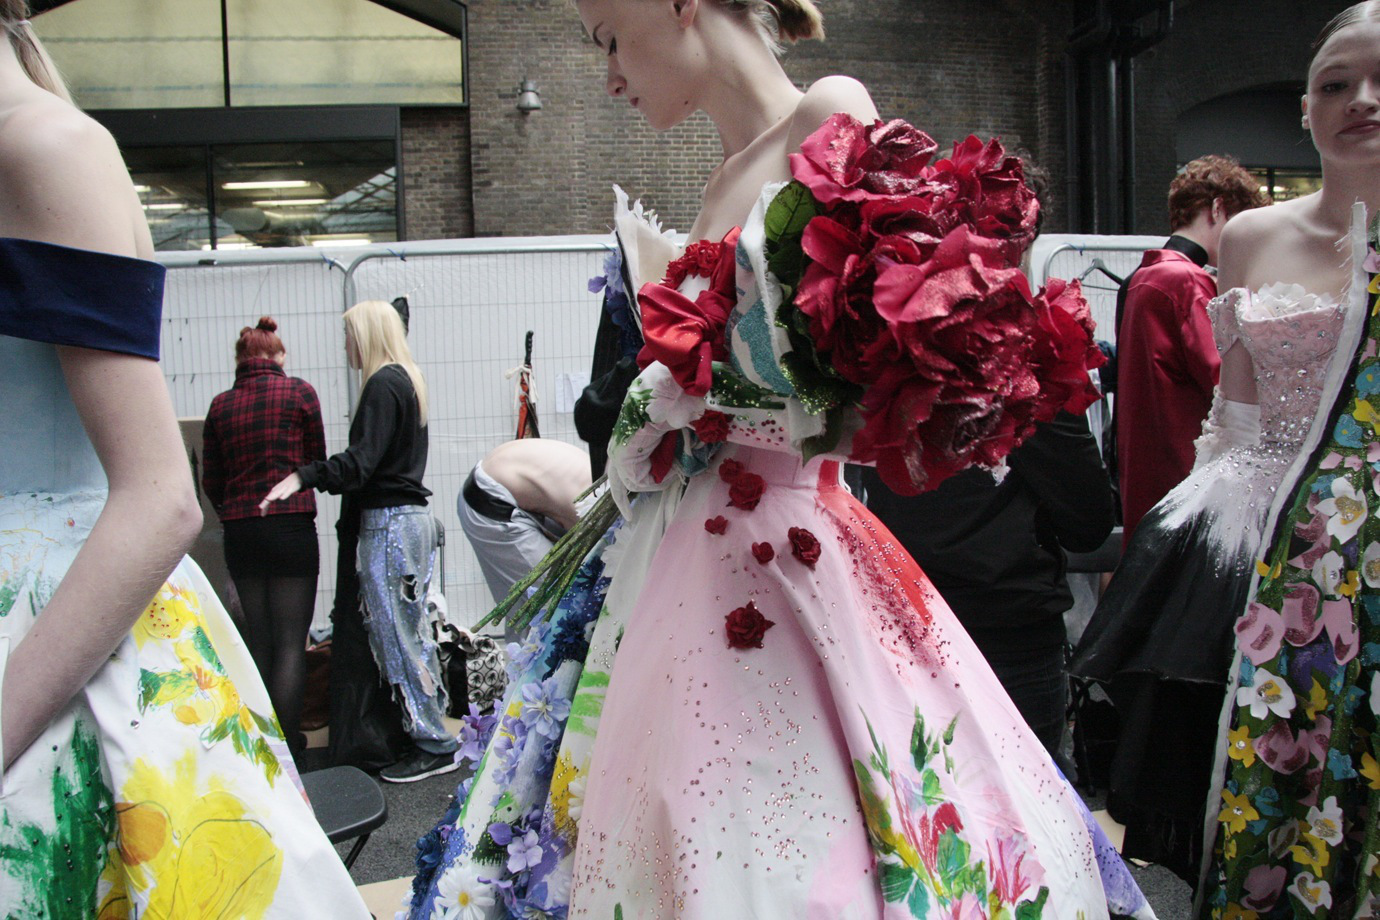 1granary_central_saint_martins_ba_press_show_2014_backstage_1086